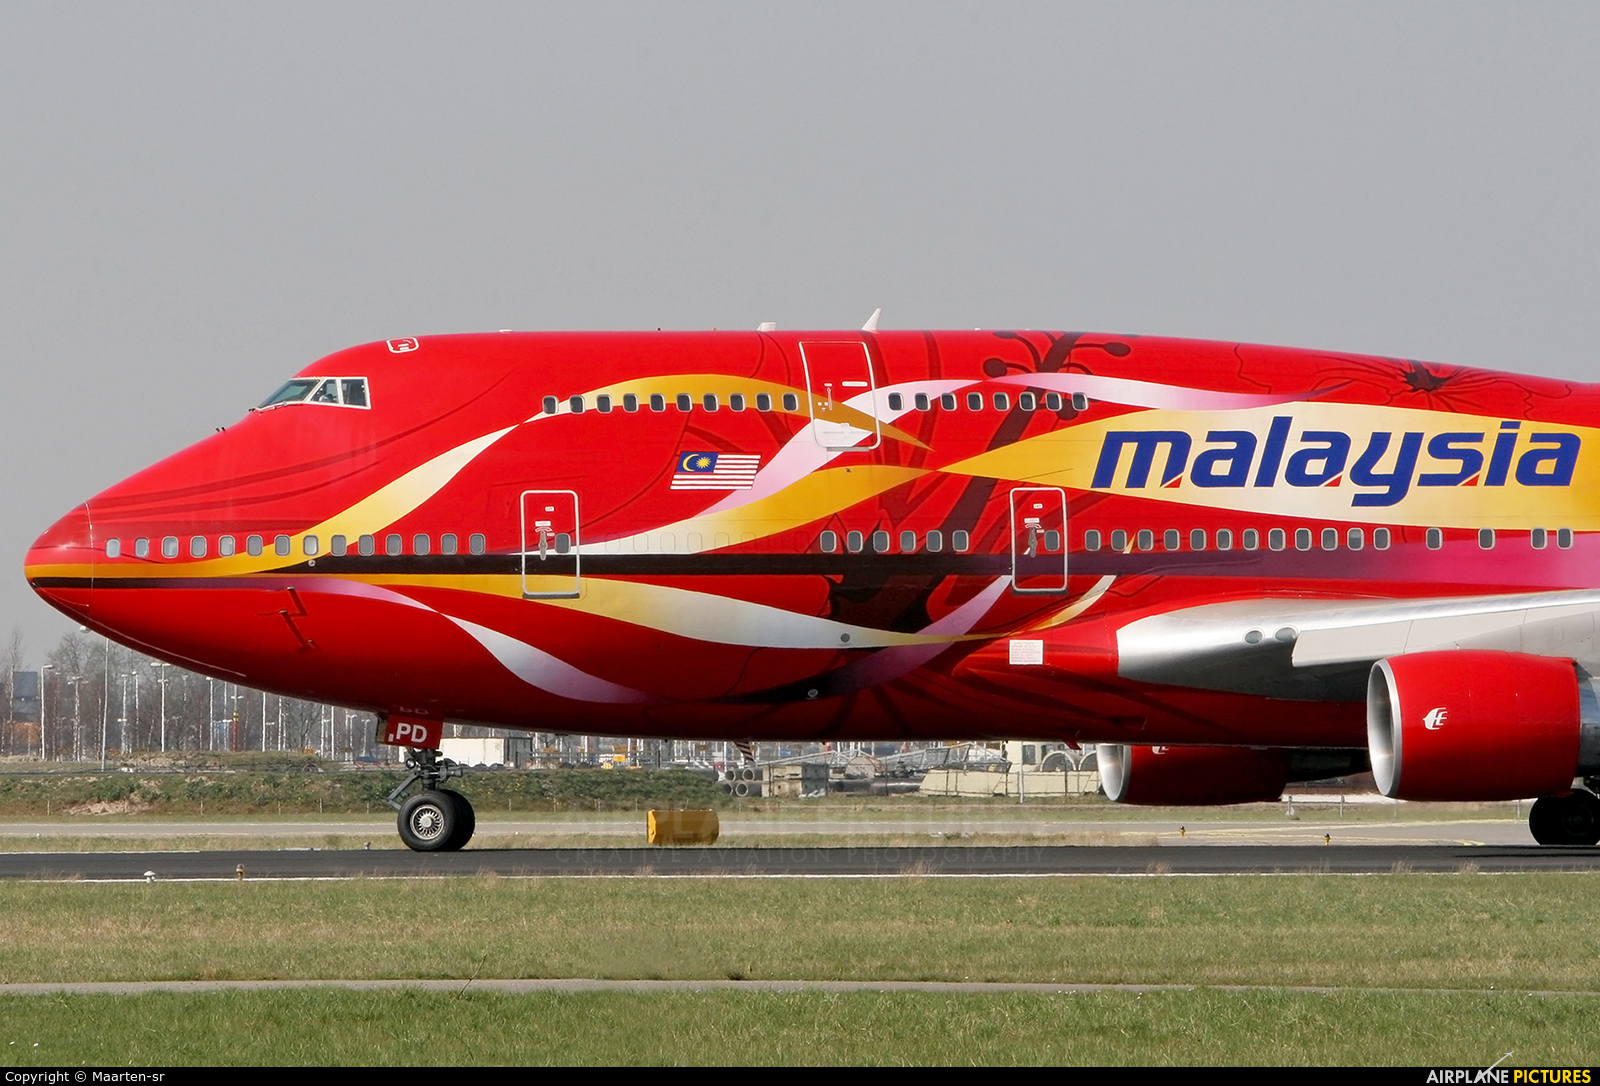 Malaysia Airlines 9M-MPD aircraft at Amsterdam - Schiphol